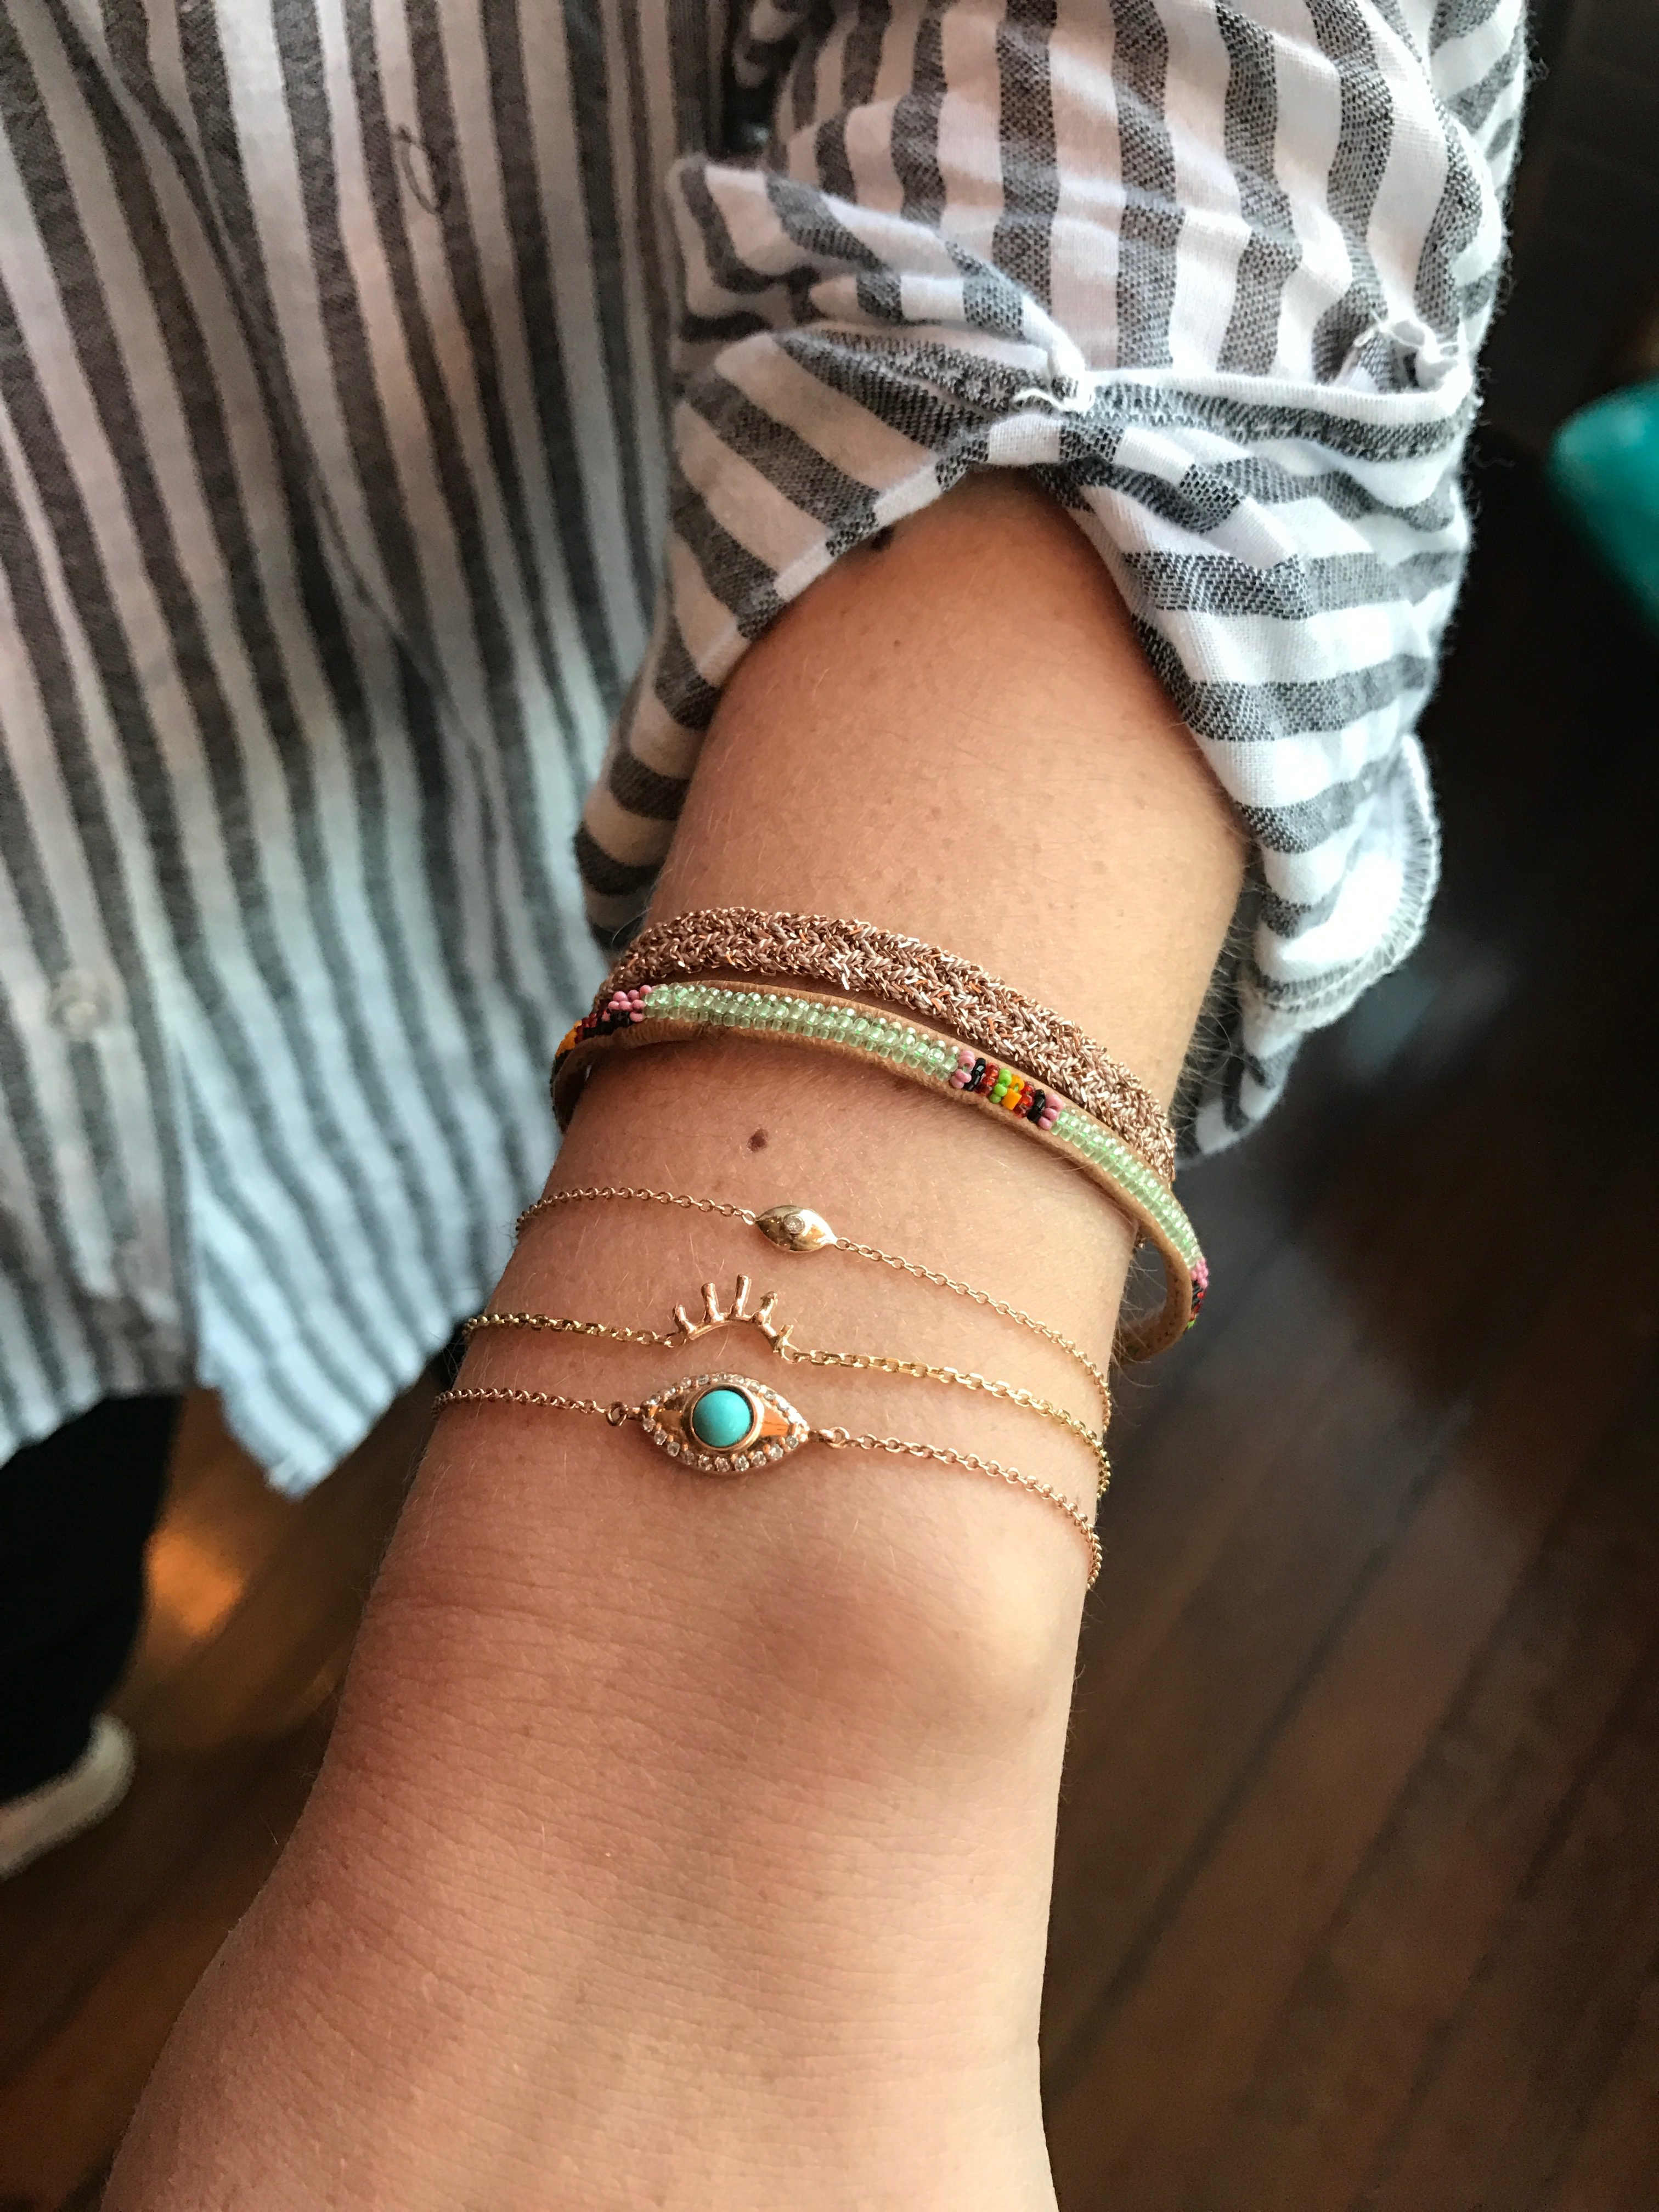 evil eye with turquoise and diamonds